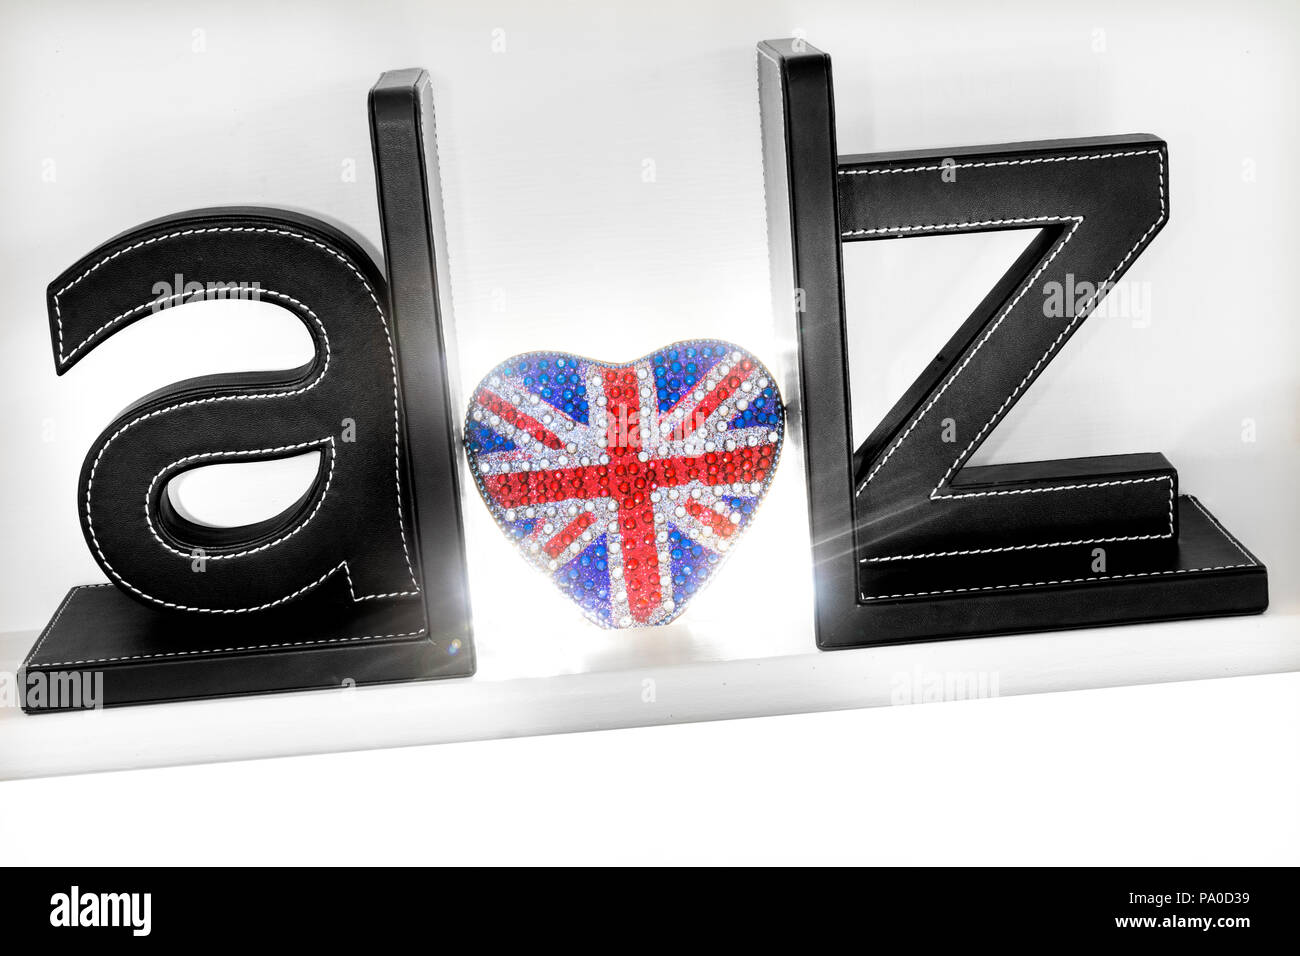 Concept A-Z three dimensional letters with sparkling heart shape Union Jack Flag motif shining out Love UK Travel Brexit Guide A to Z Britain Union - Stock Image